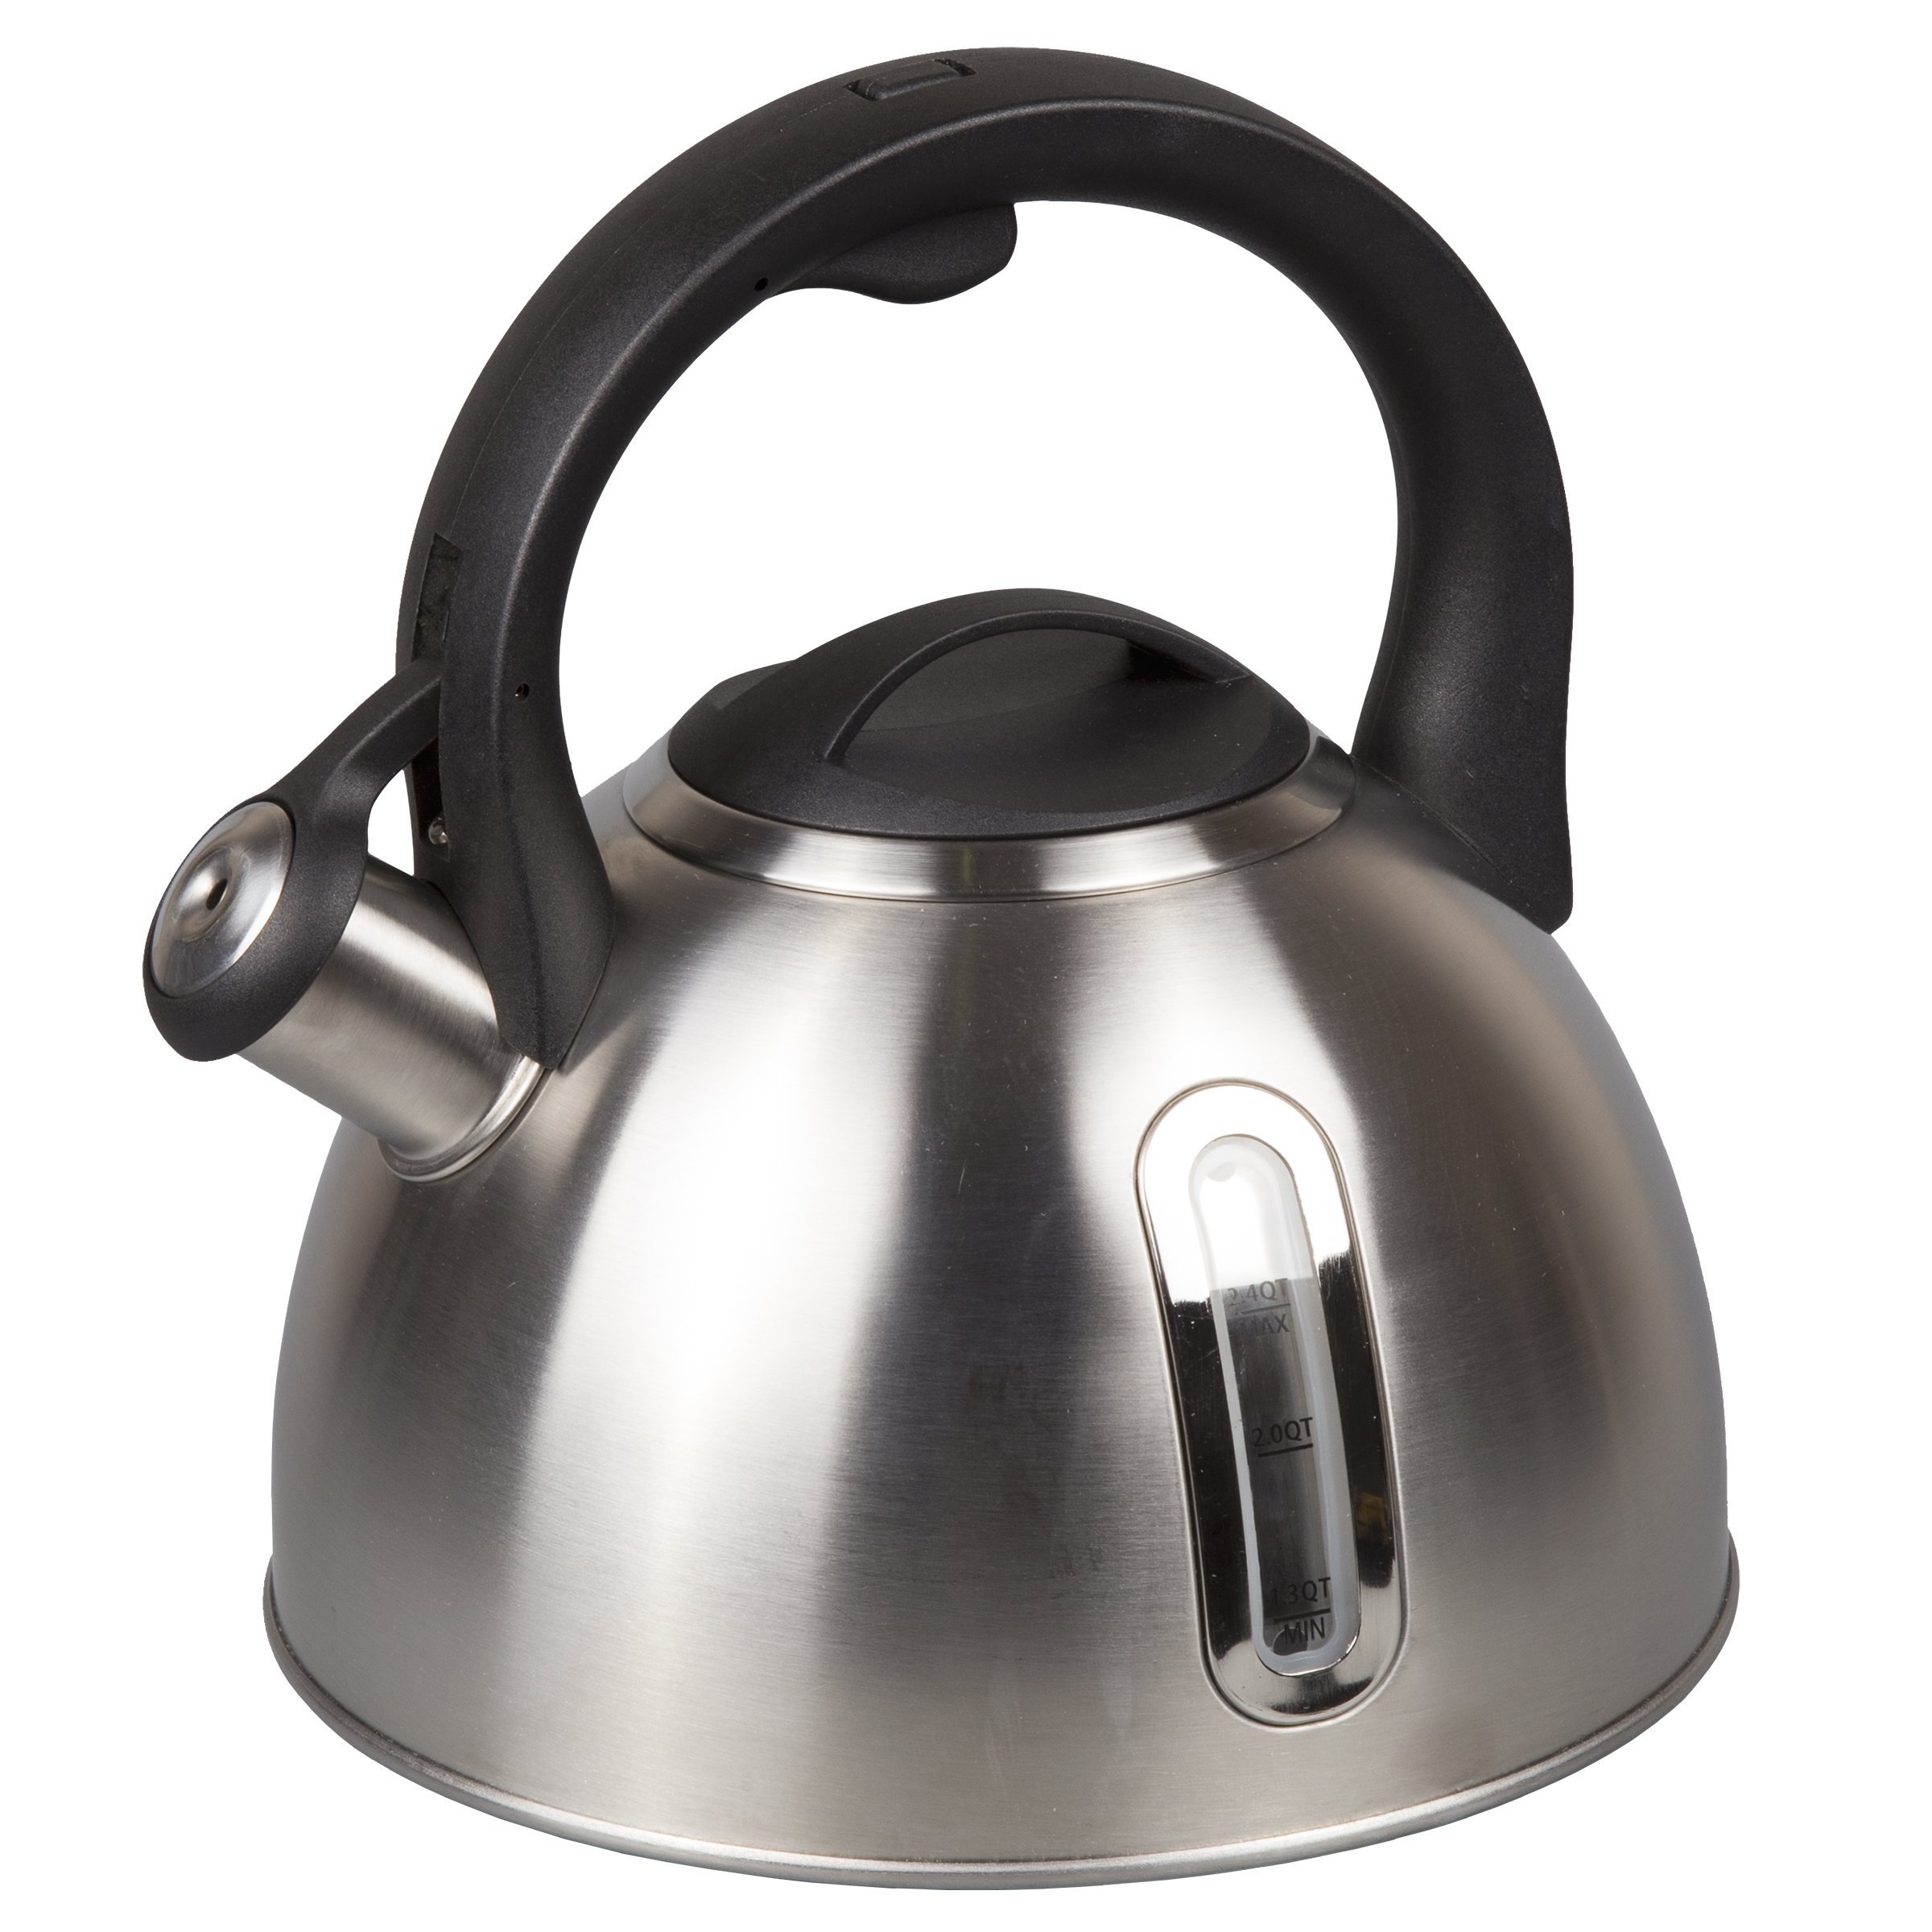 Creative Home 72248 Whistling with Capsulated Bottom Clear Window 2.4 Qt. Stainless Steel Tea Kettle, Silver